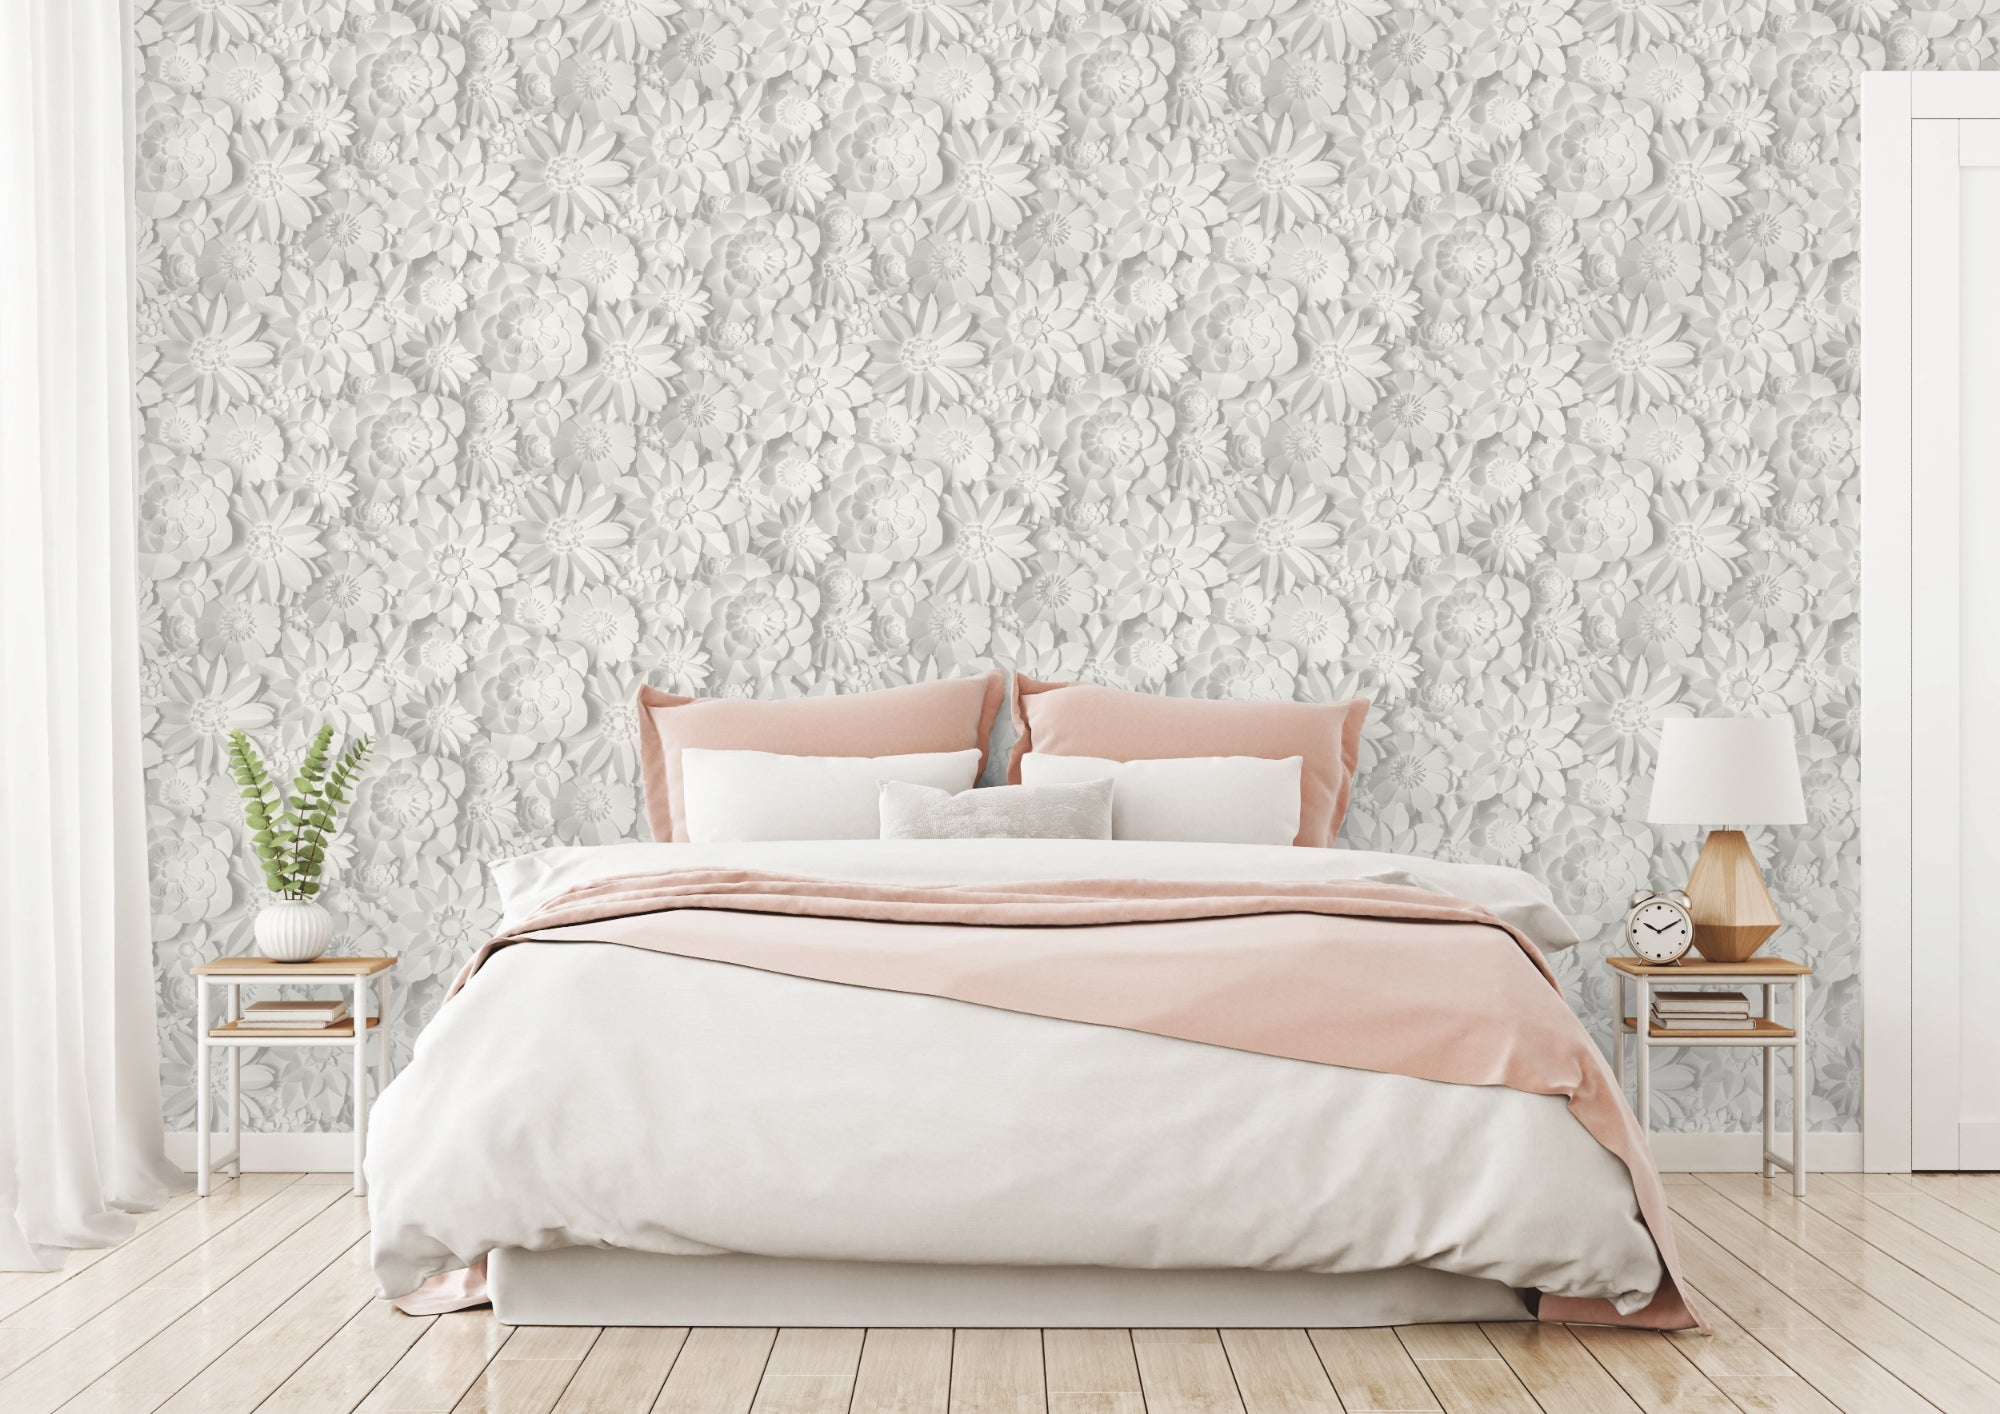 Fine Decor Wallpaper Dimensions Floral White Grey Fd42554 Wonderwall By Nobletts